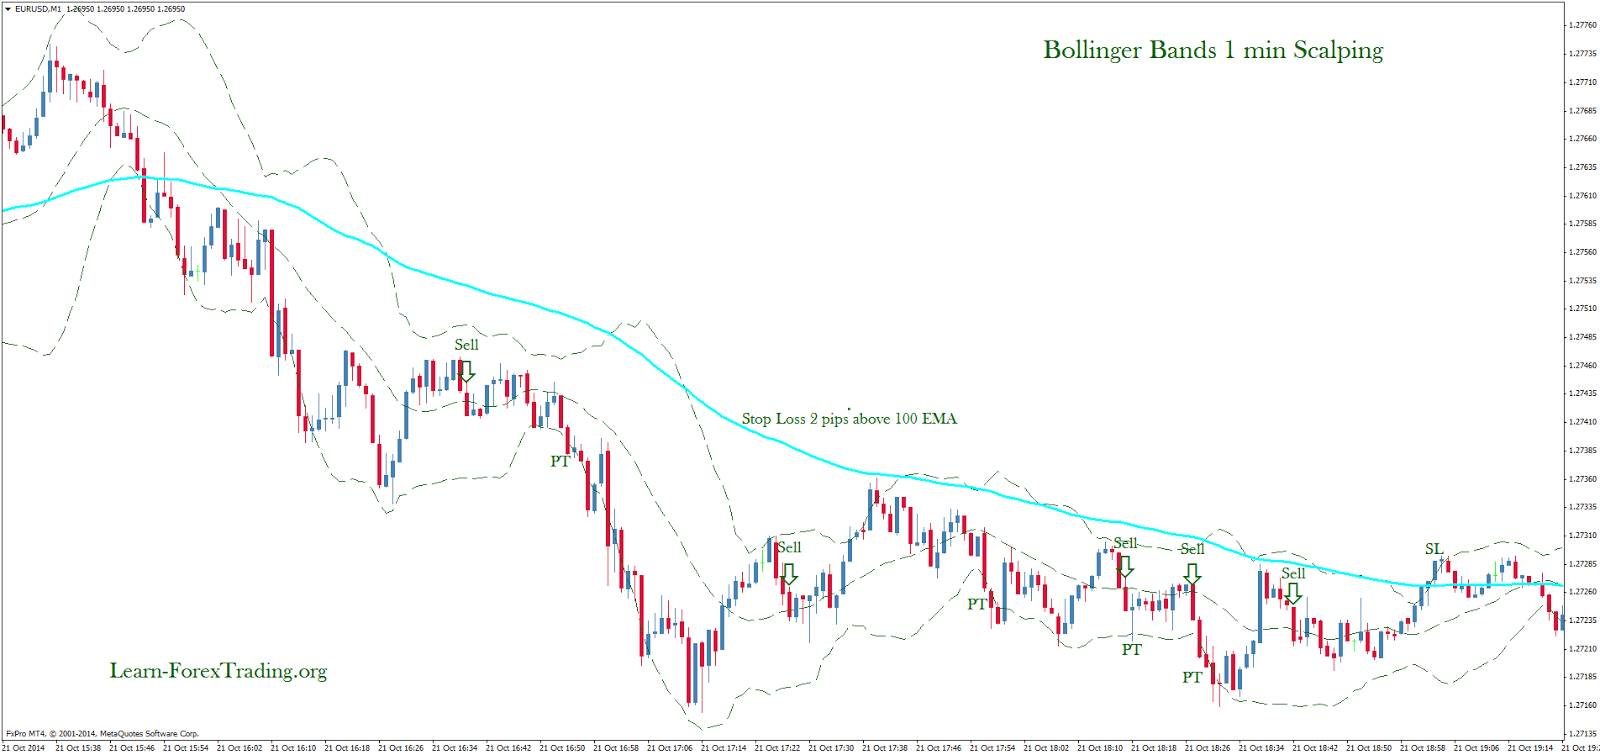 Day trade 1 minute bollinger bands